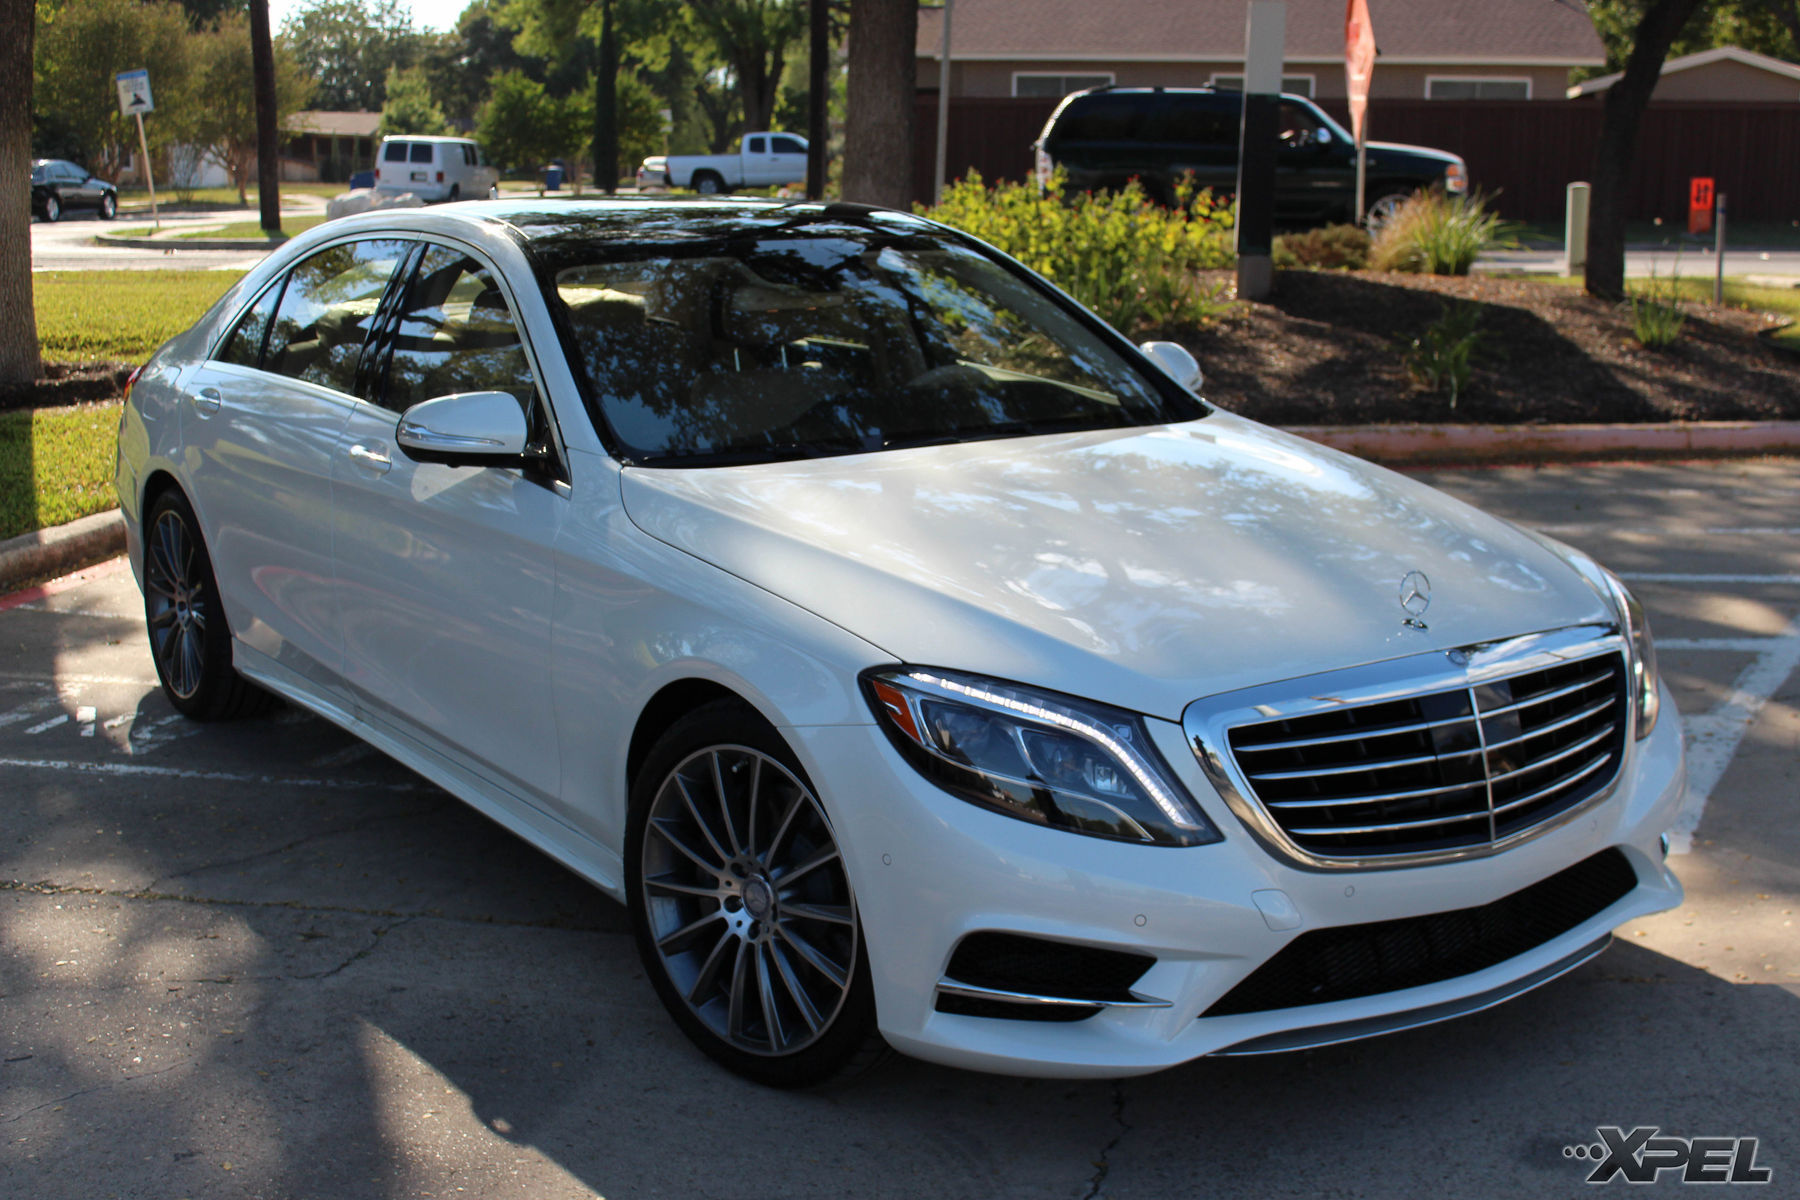 2015 Mercedes-Benz 500-Class | 2015 S550 with XPEL ULTIMATE paint protection film